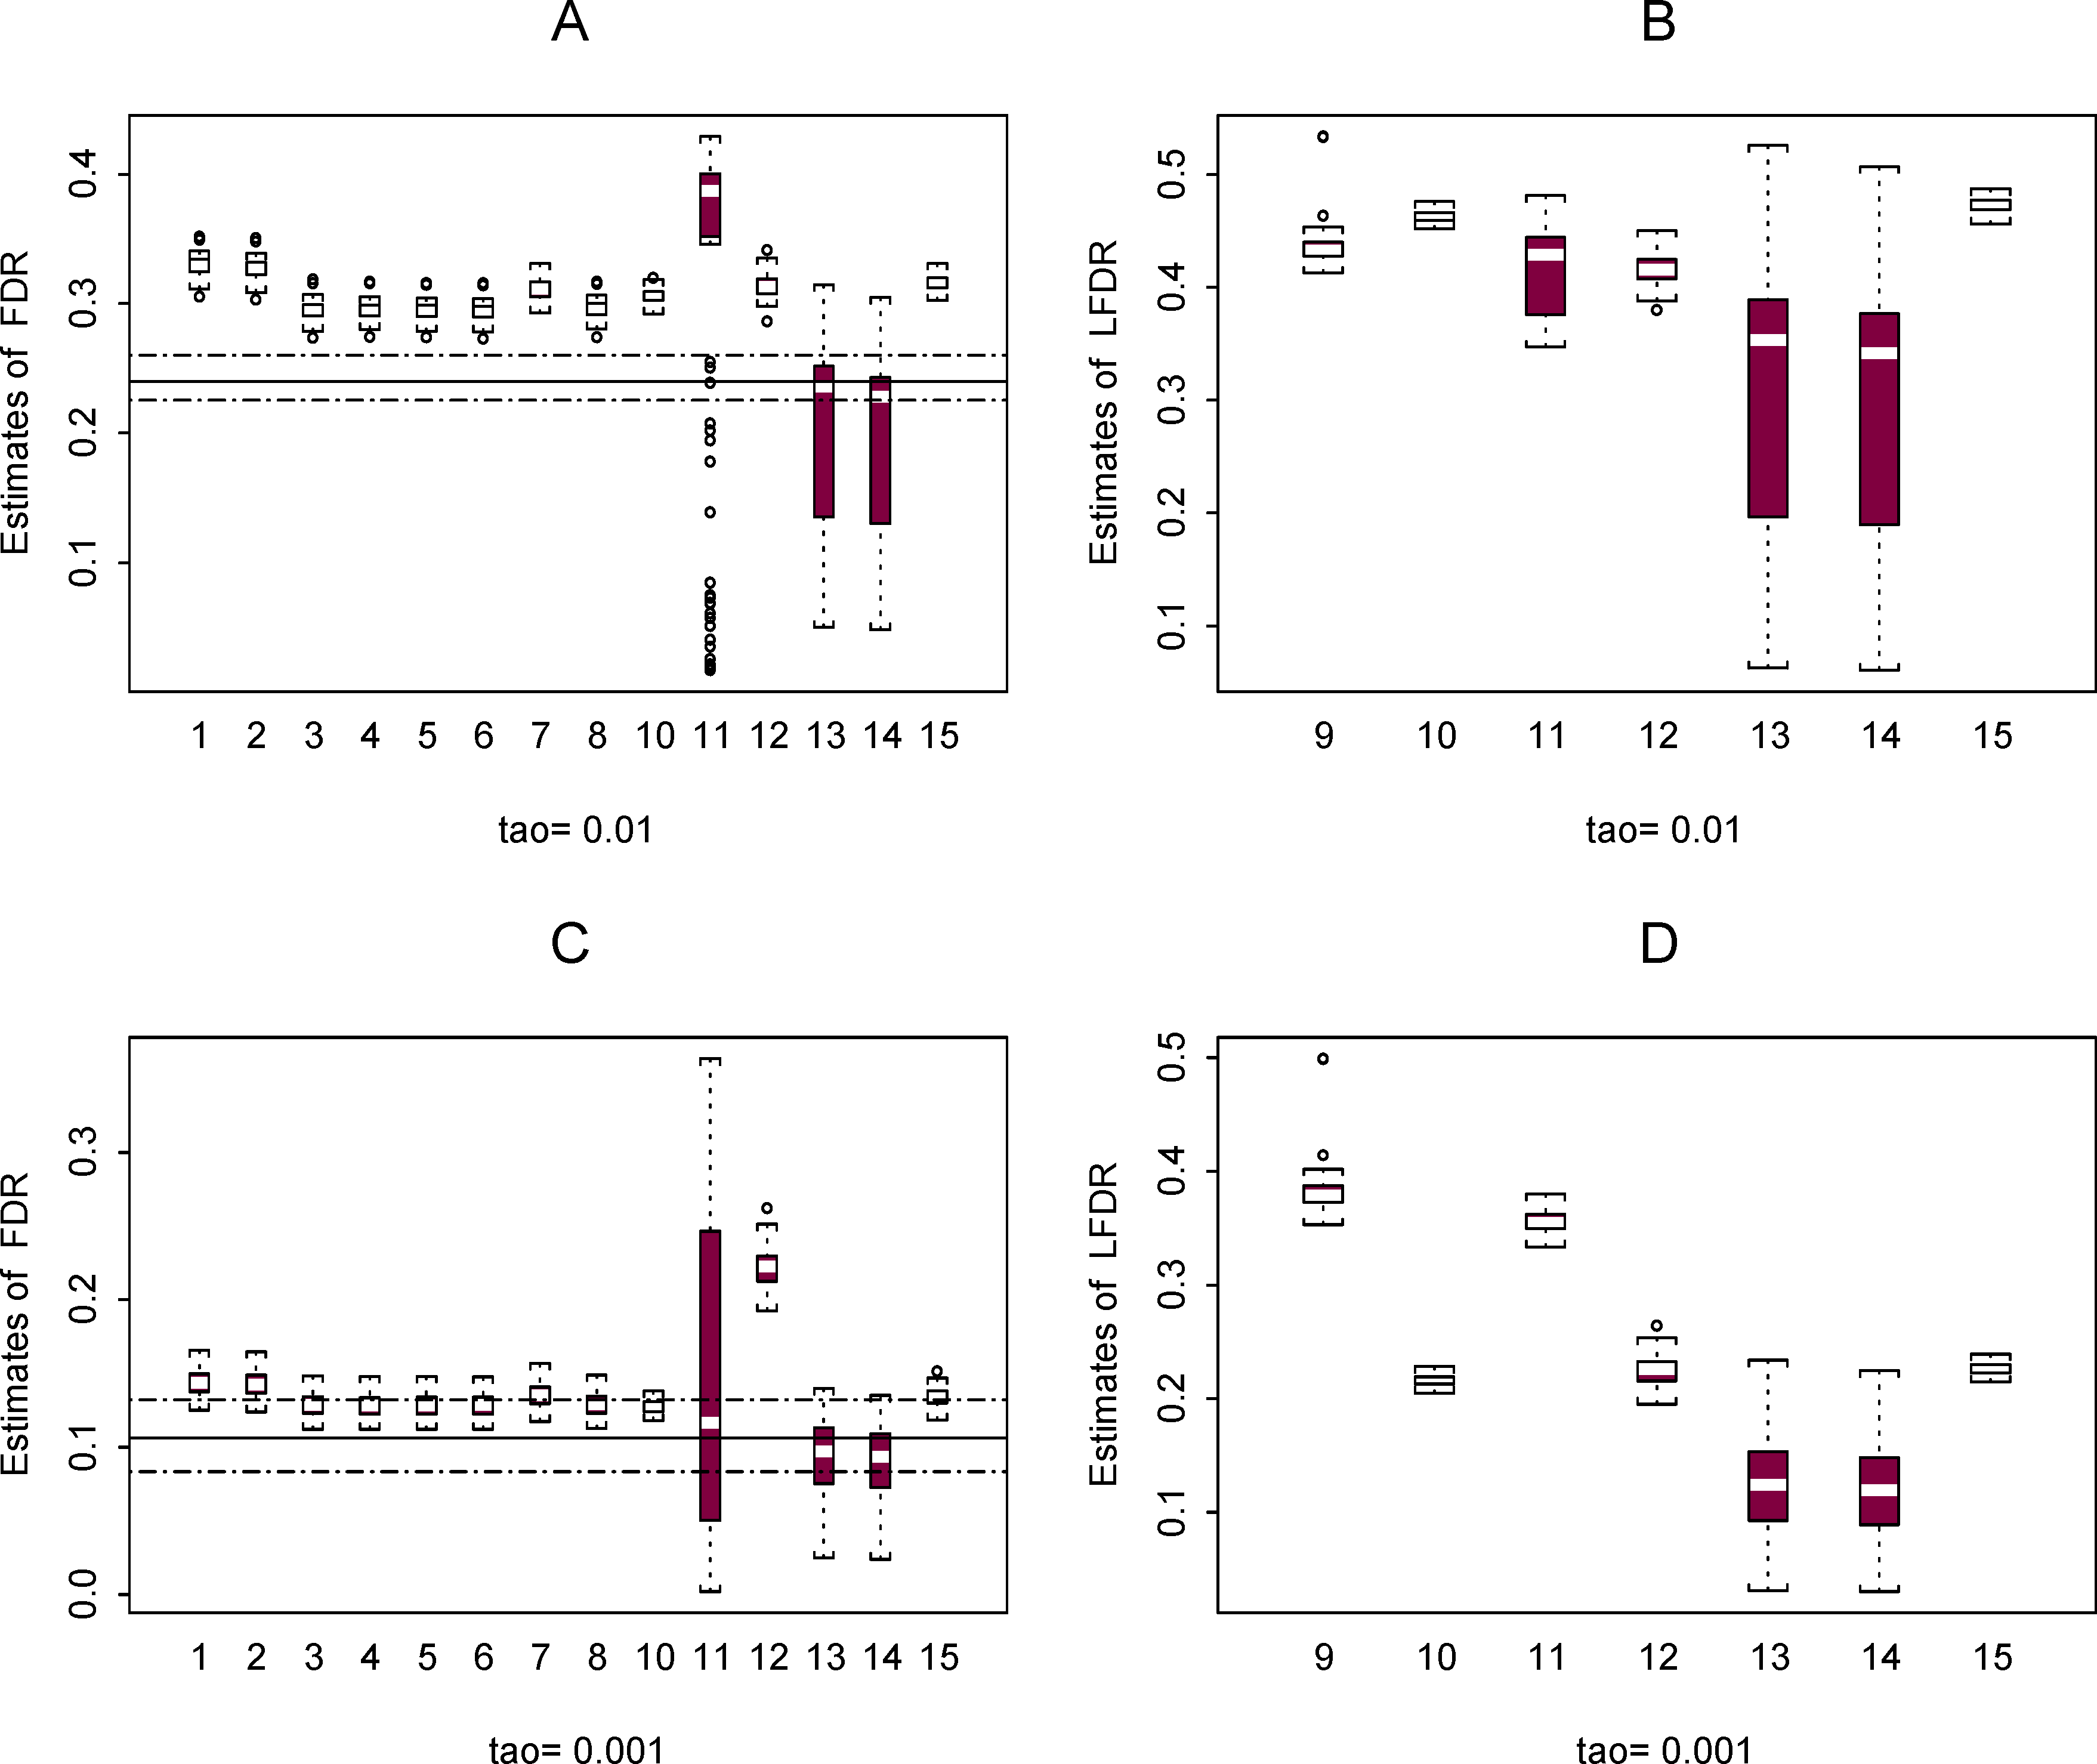 Plots of estimated <i>FDR</i> (A and C) and <i>LFDR</i> (B and D) using the 15 methods in 100 plasmodes from data set 2 for the case where π<sub>0</sub>=0.9.